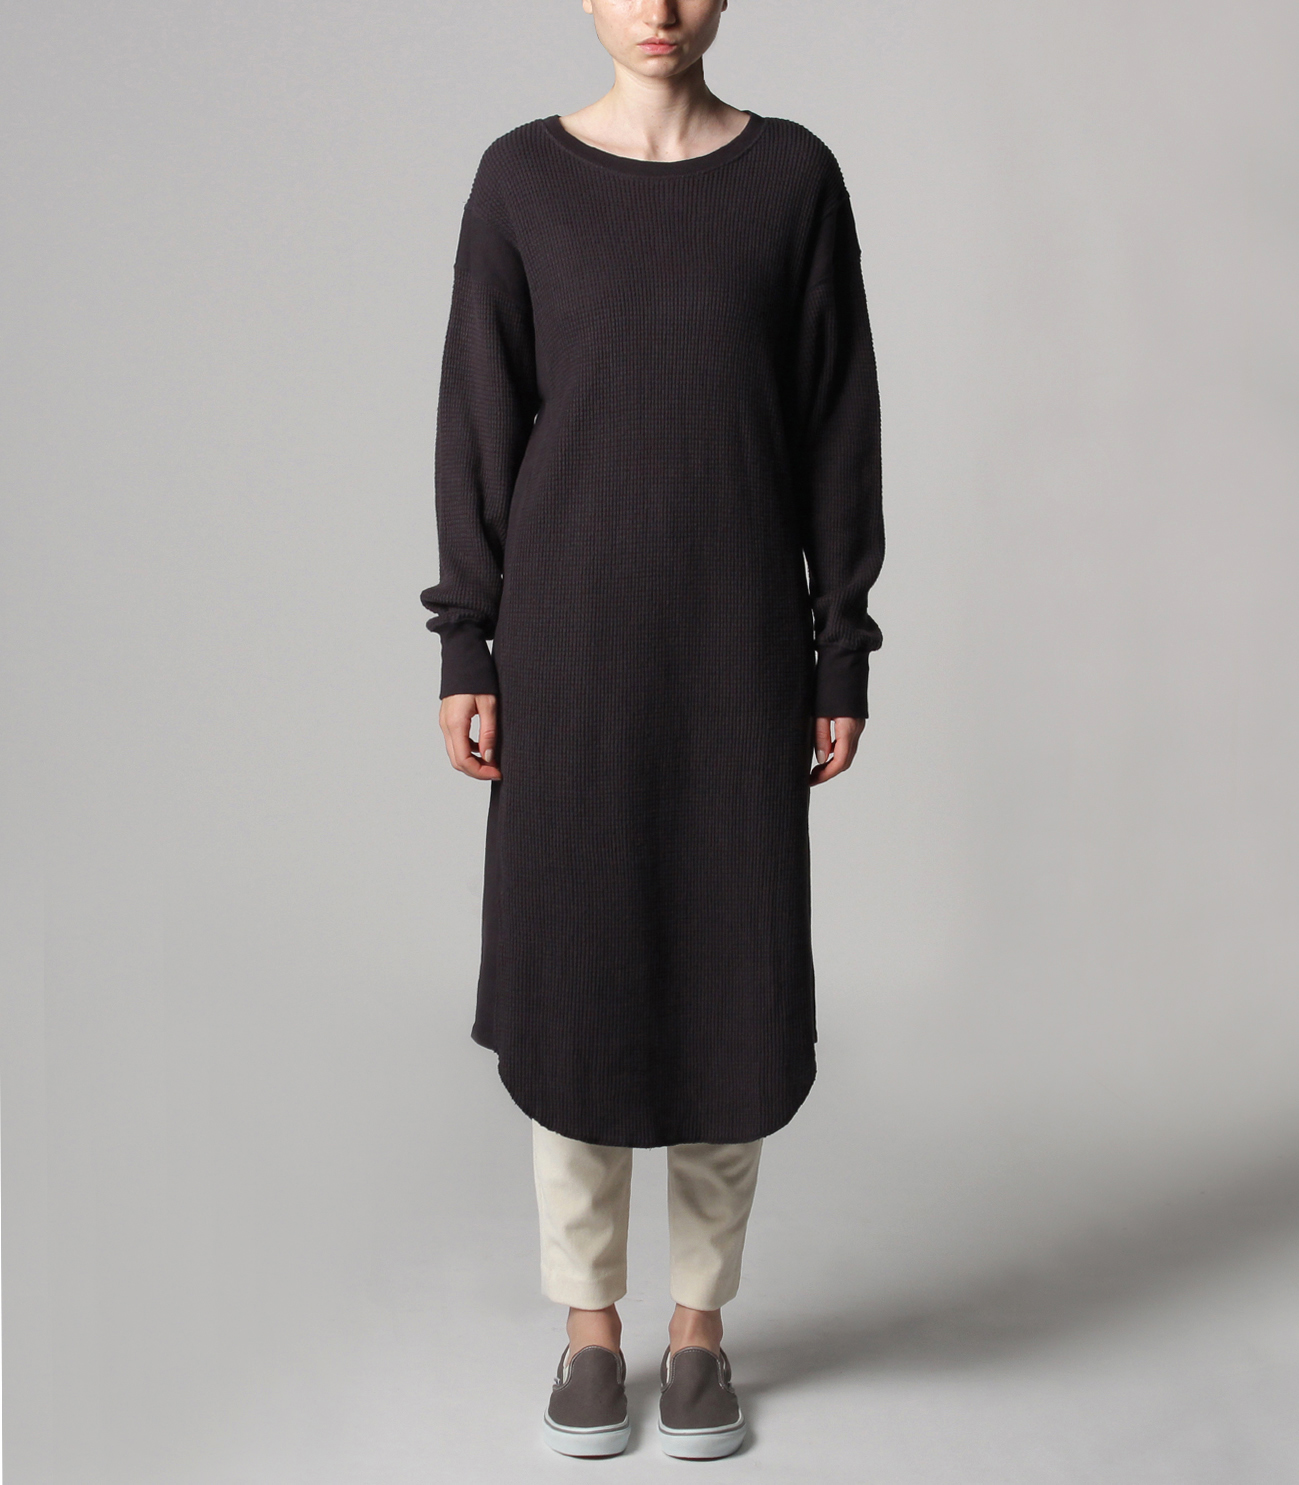 Double brushed waffle l/s dress 詳細画像 black 2